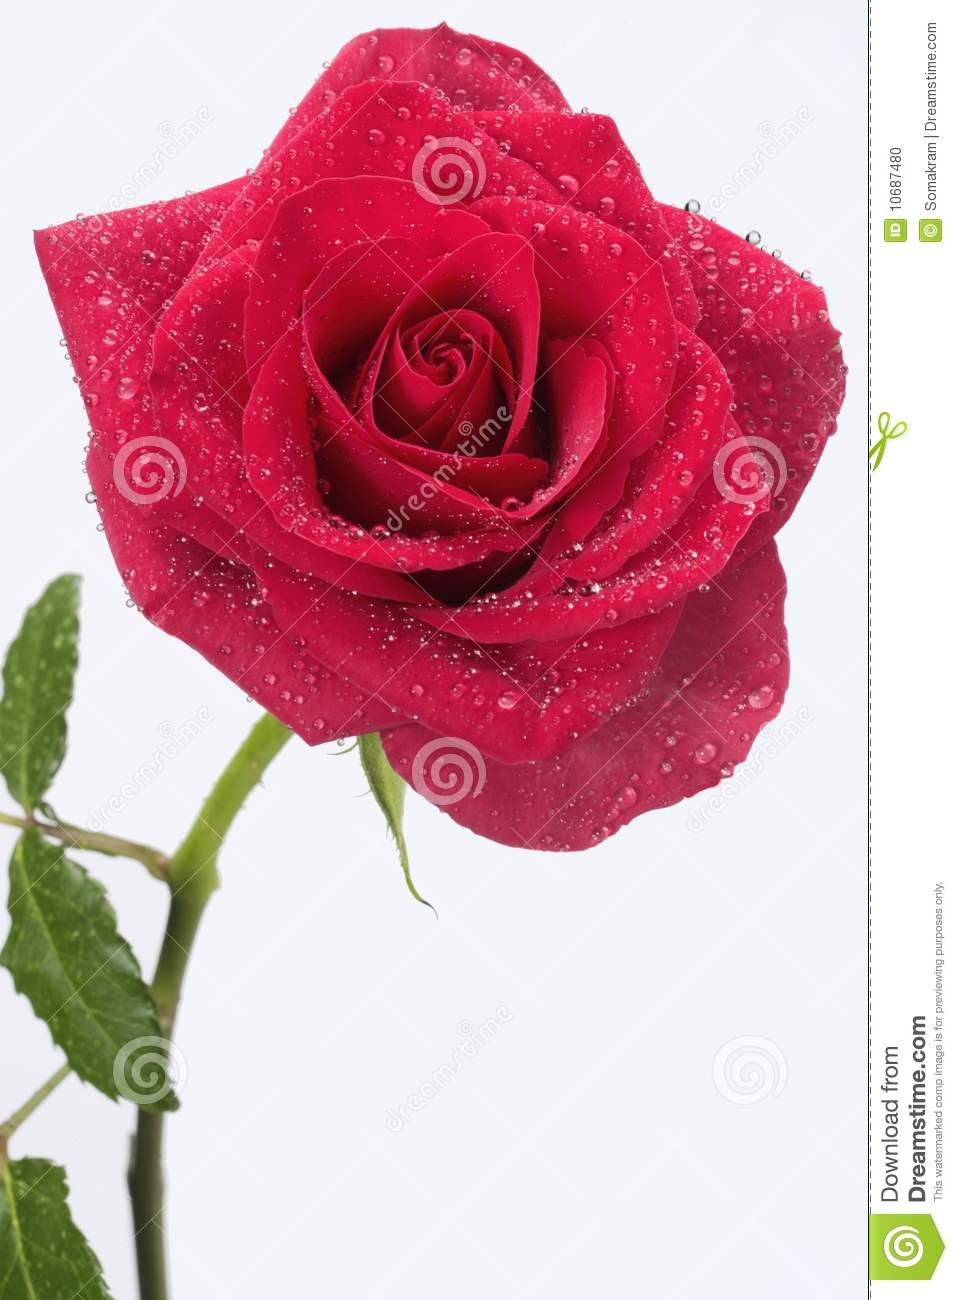 Details Of A Single Long Stem Red Rose On A White Background